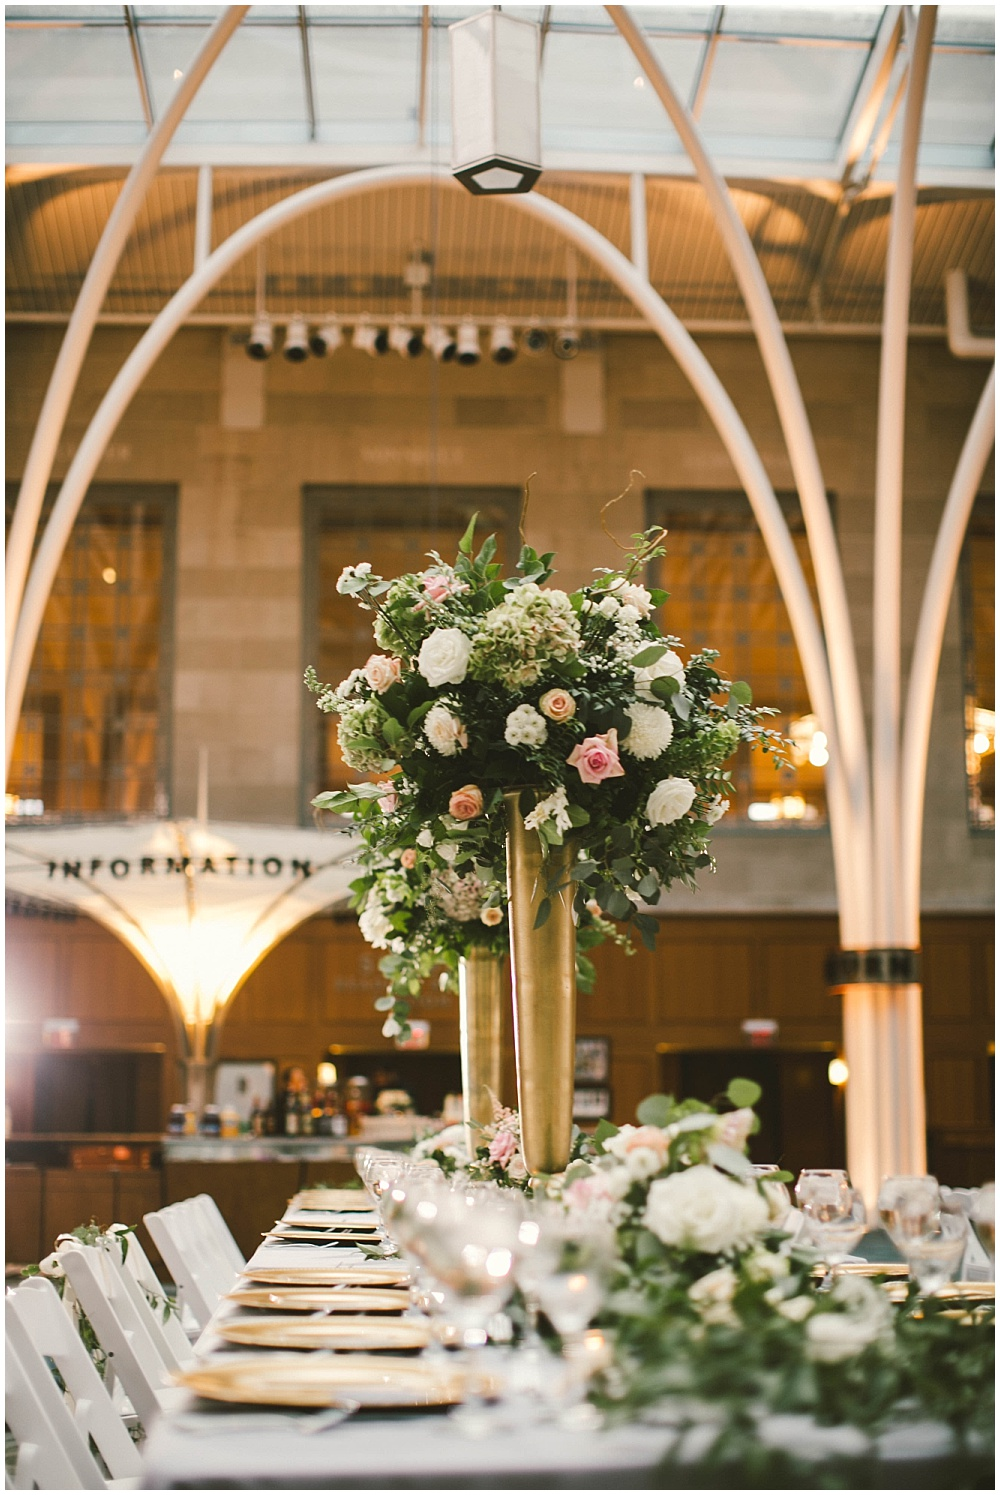 Blush, white and gold library wedding | Indianapolis Central Library Wedding by Jennifer Van Elk Photography & Jessica Dum Wedding Coordination